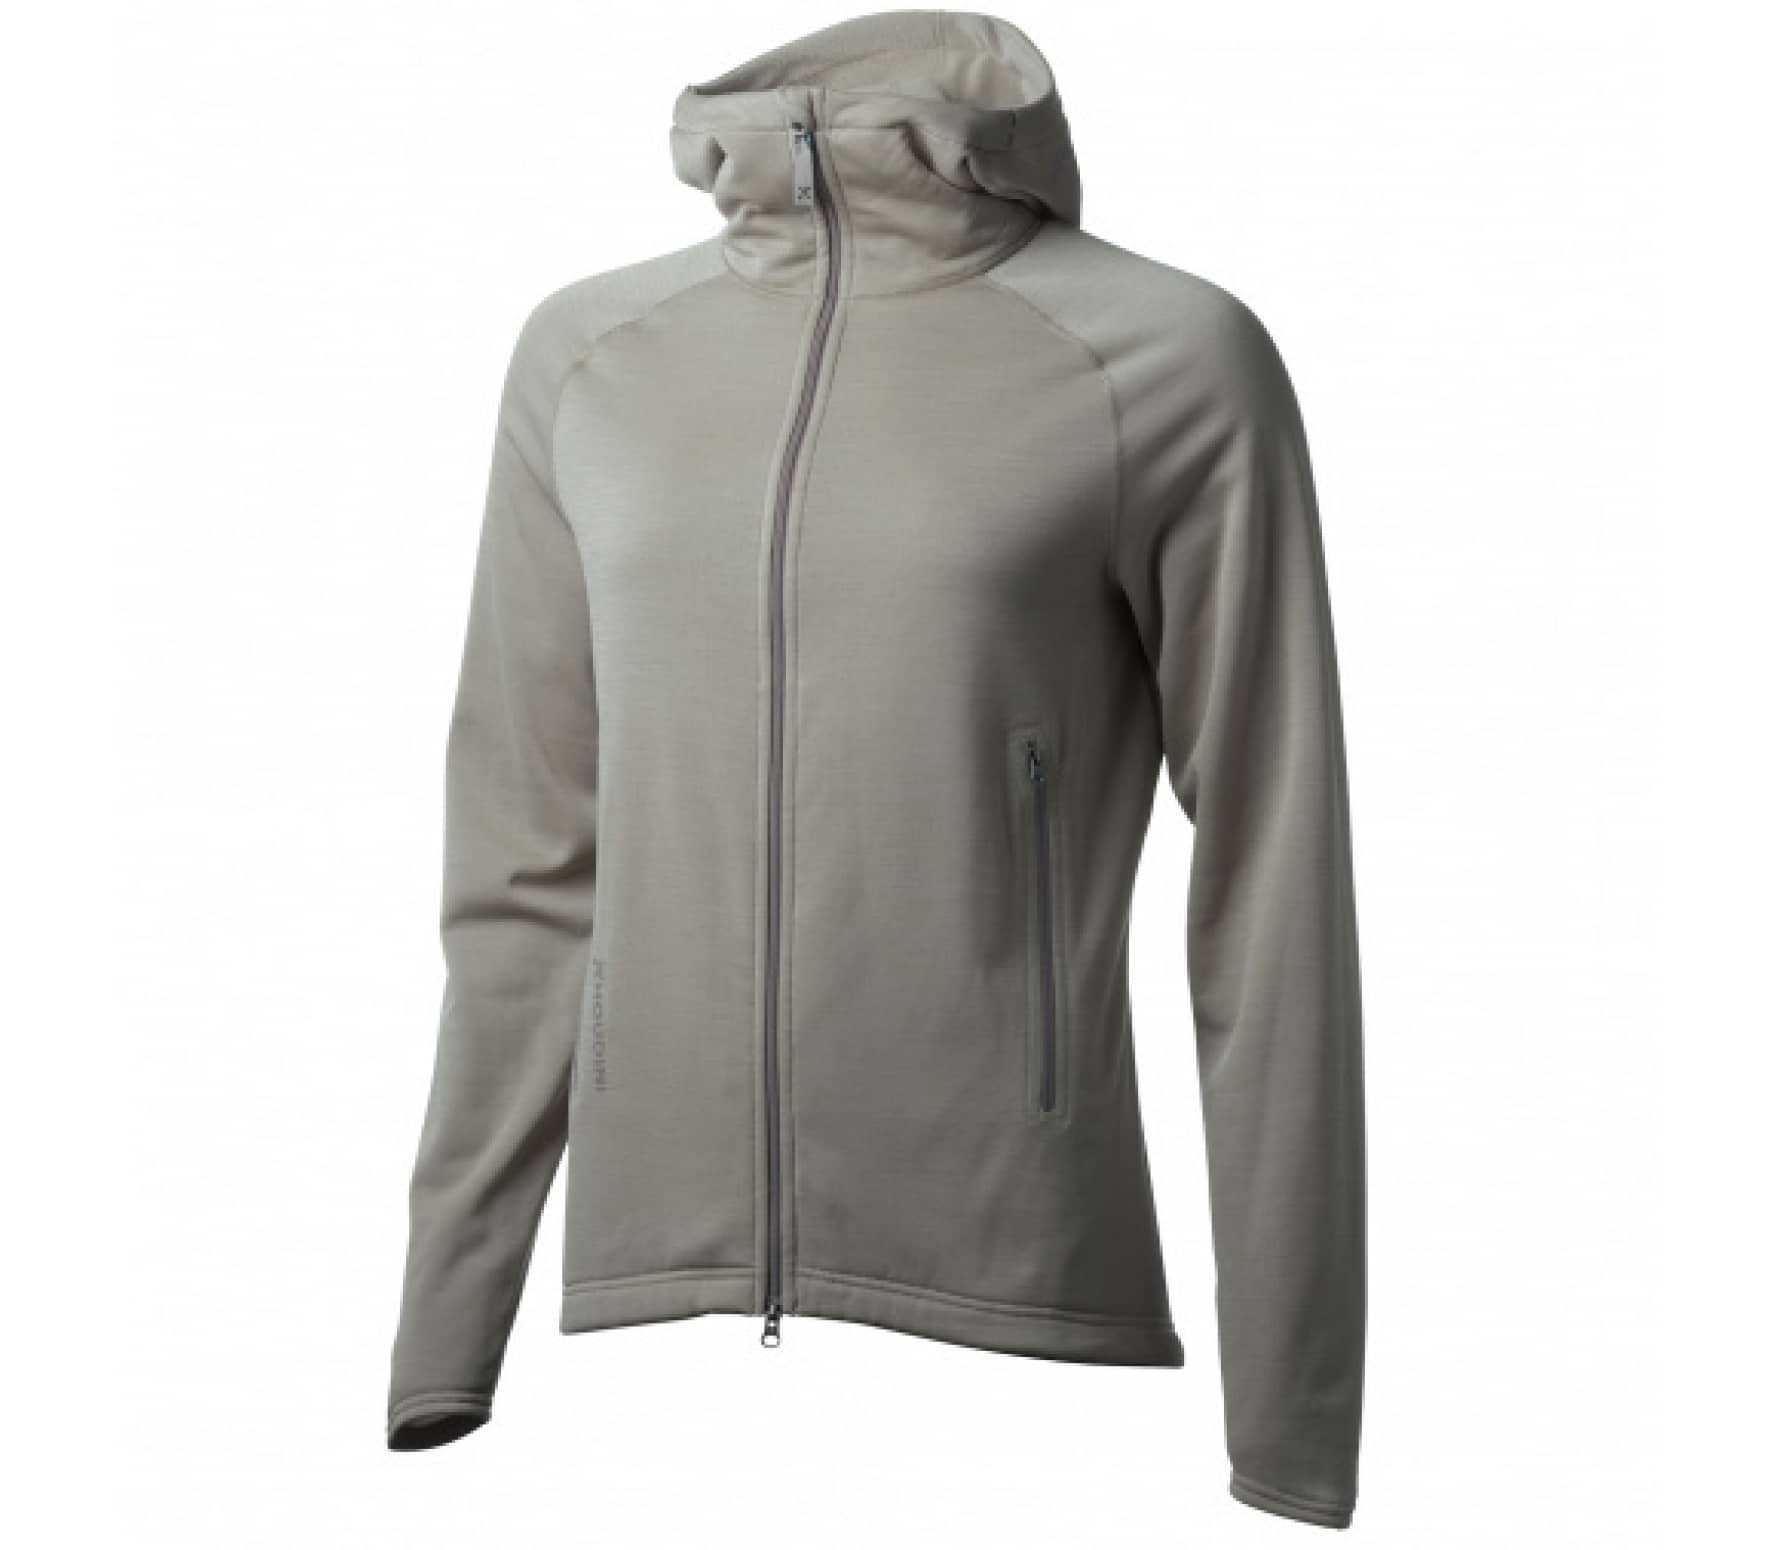 33c86c53f32 Houdini - Outright Houdi women's Powerstretch fleece hoodie (grey ...